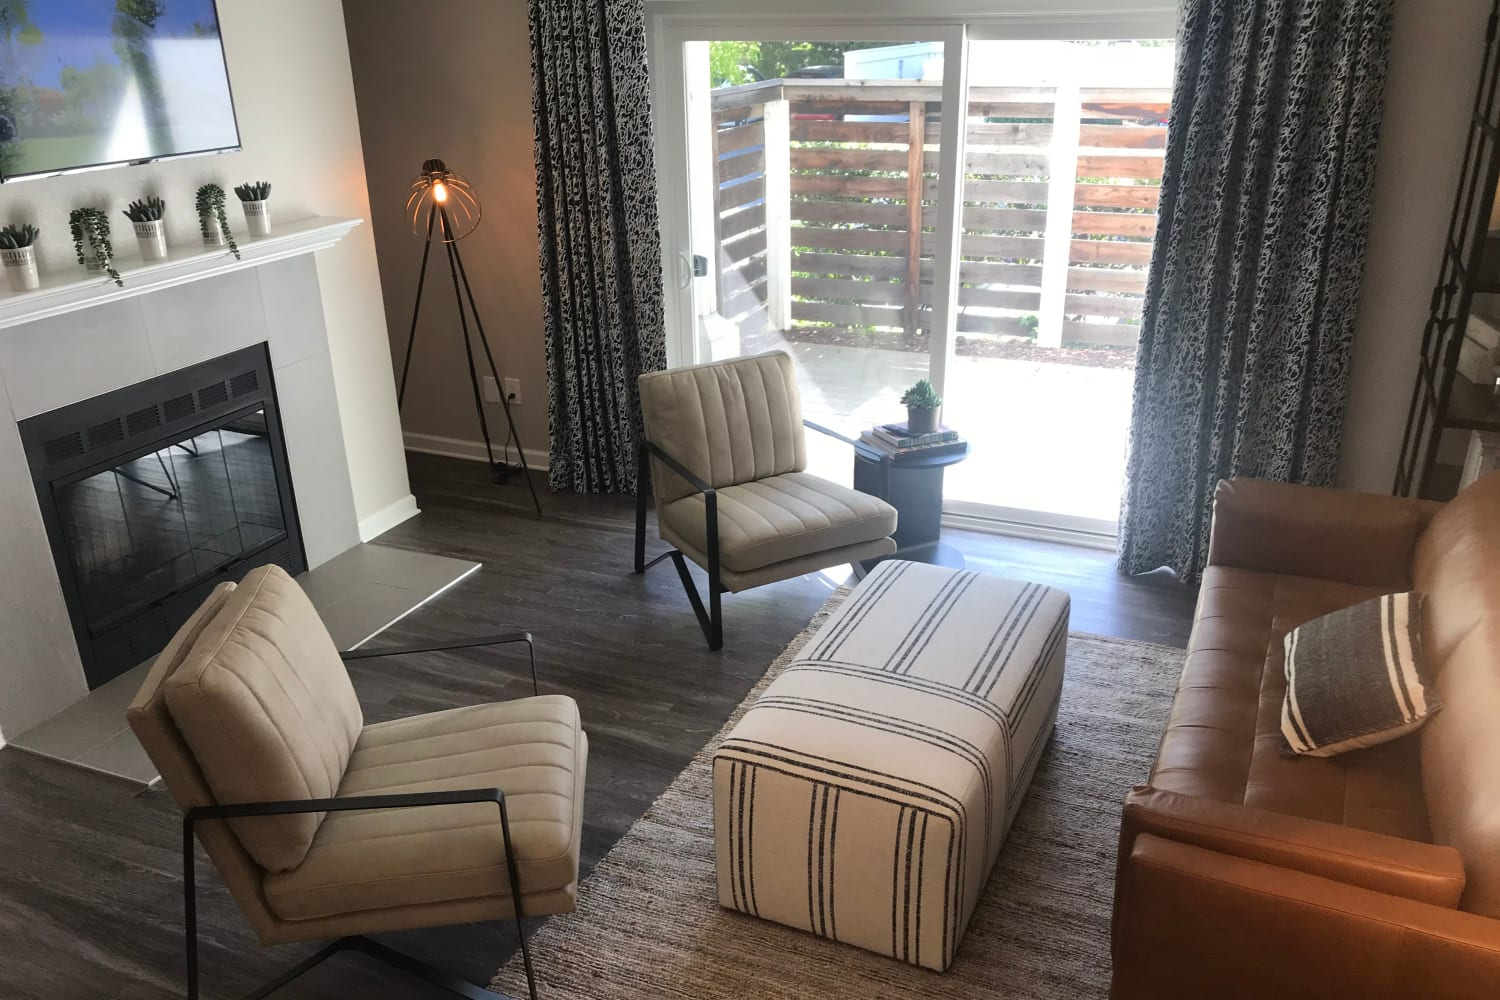 Living rooms with hardwood floors, a fireplace and a private patio at Cotton Wood Apartments in Dublin, California